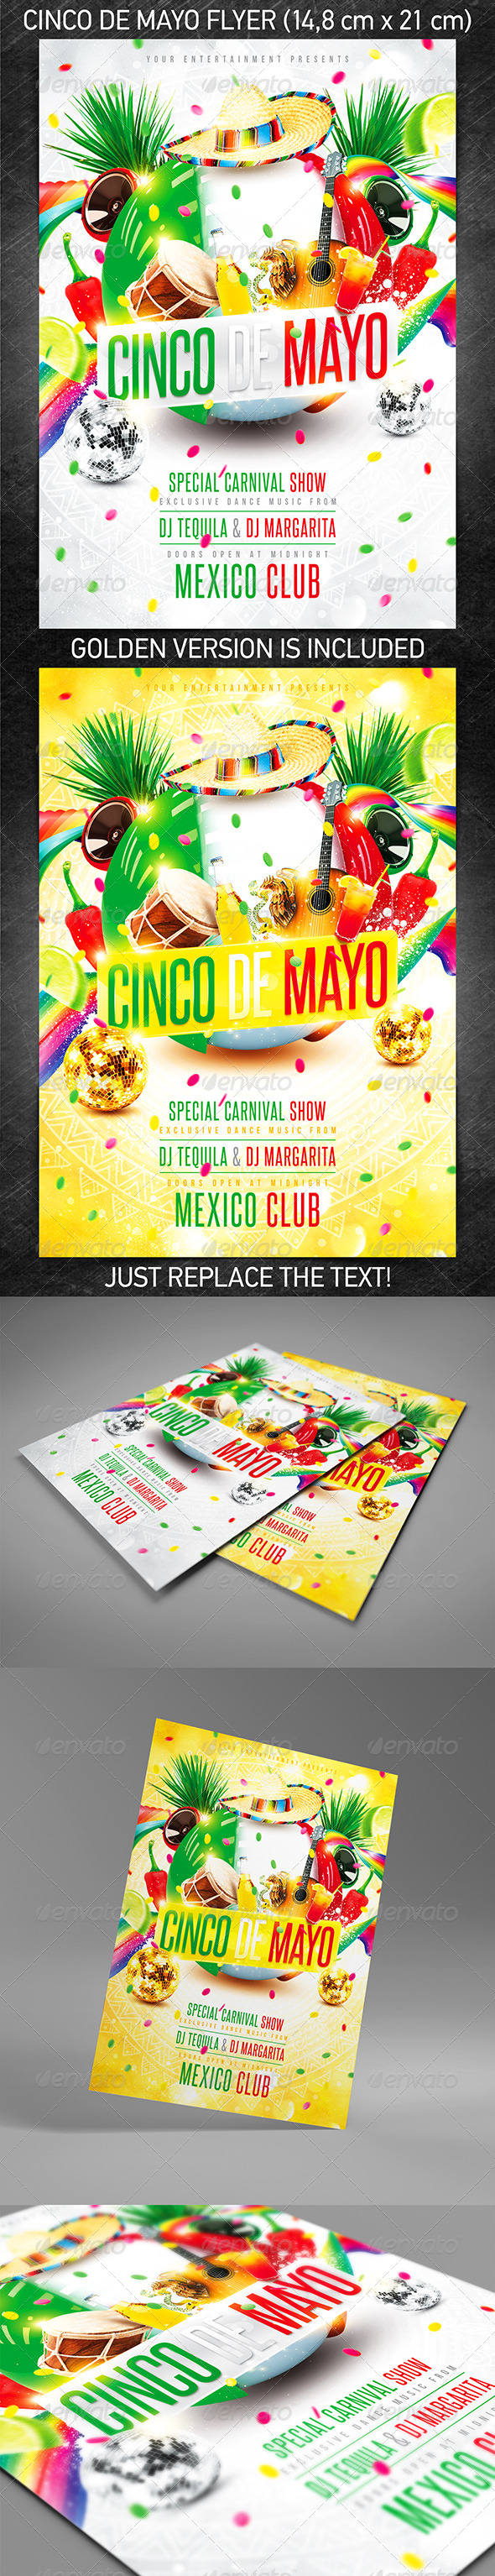 Cinco de Mayo Party Flyer - Holidays Events